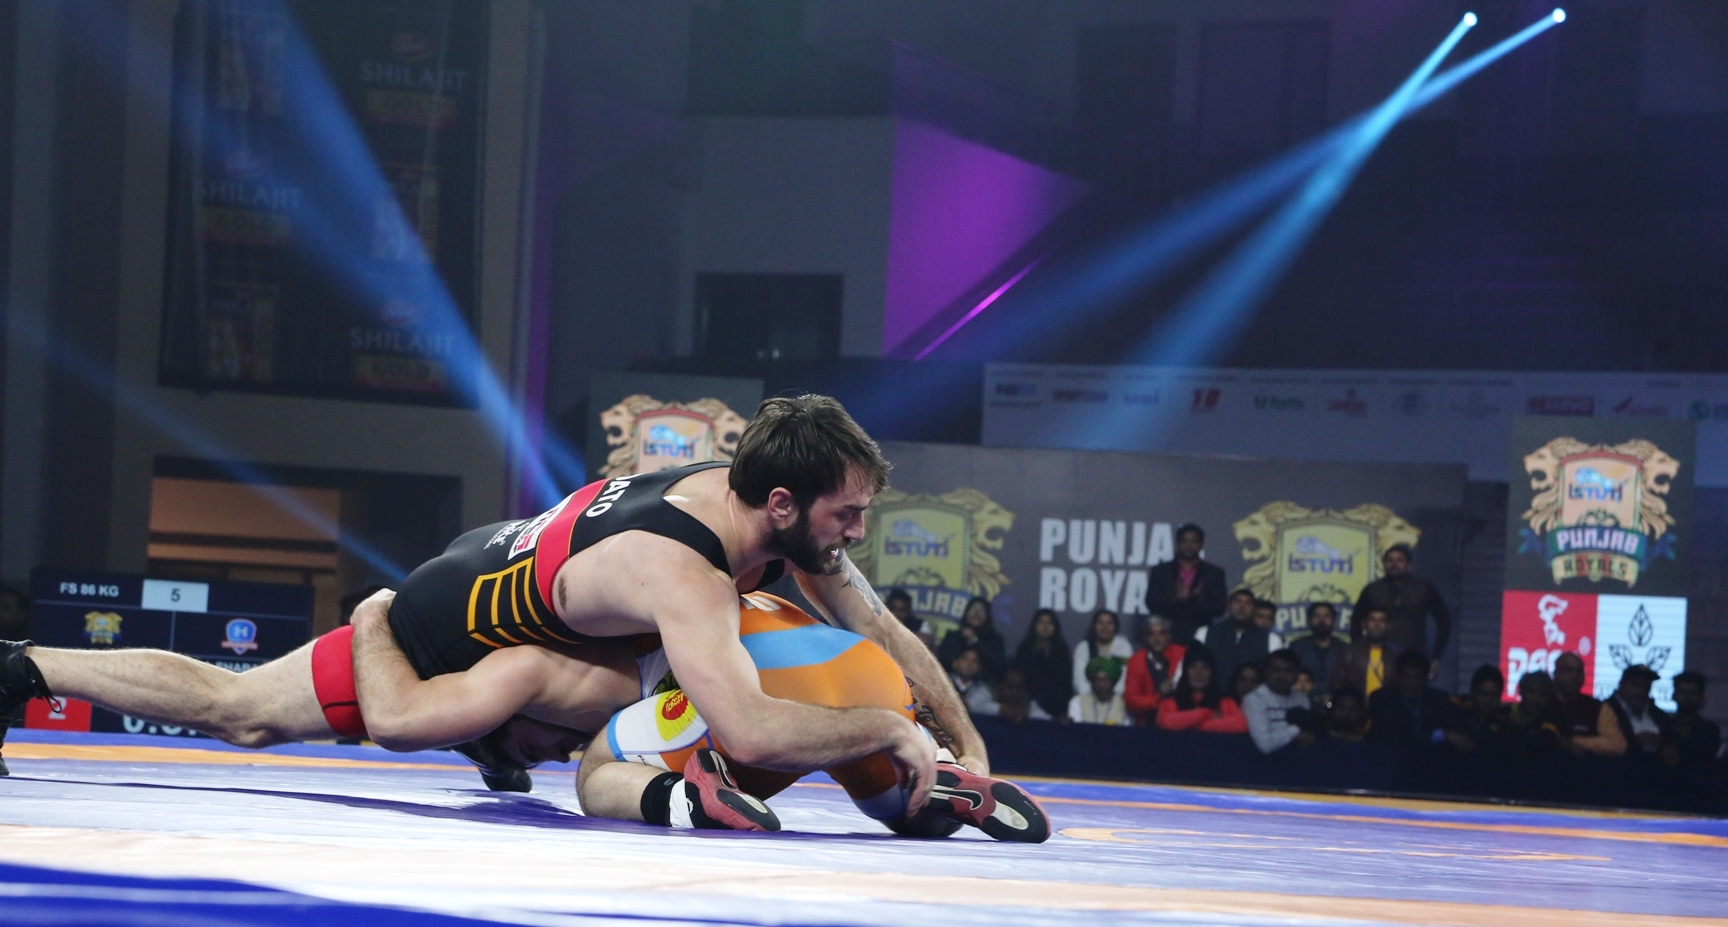 Dato of Punjab Royals comes from behind in a dramatic fashion against Ali Shabanov of Haryana Hammers